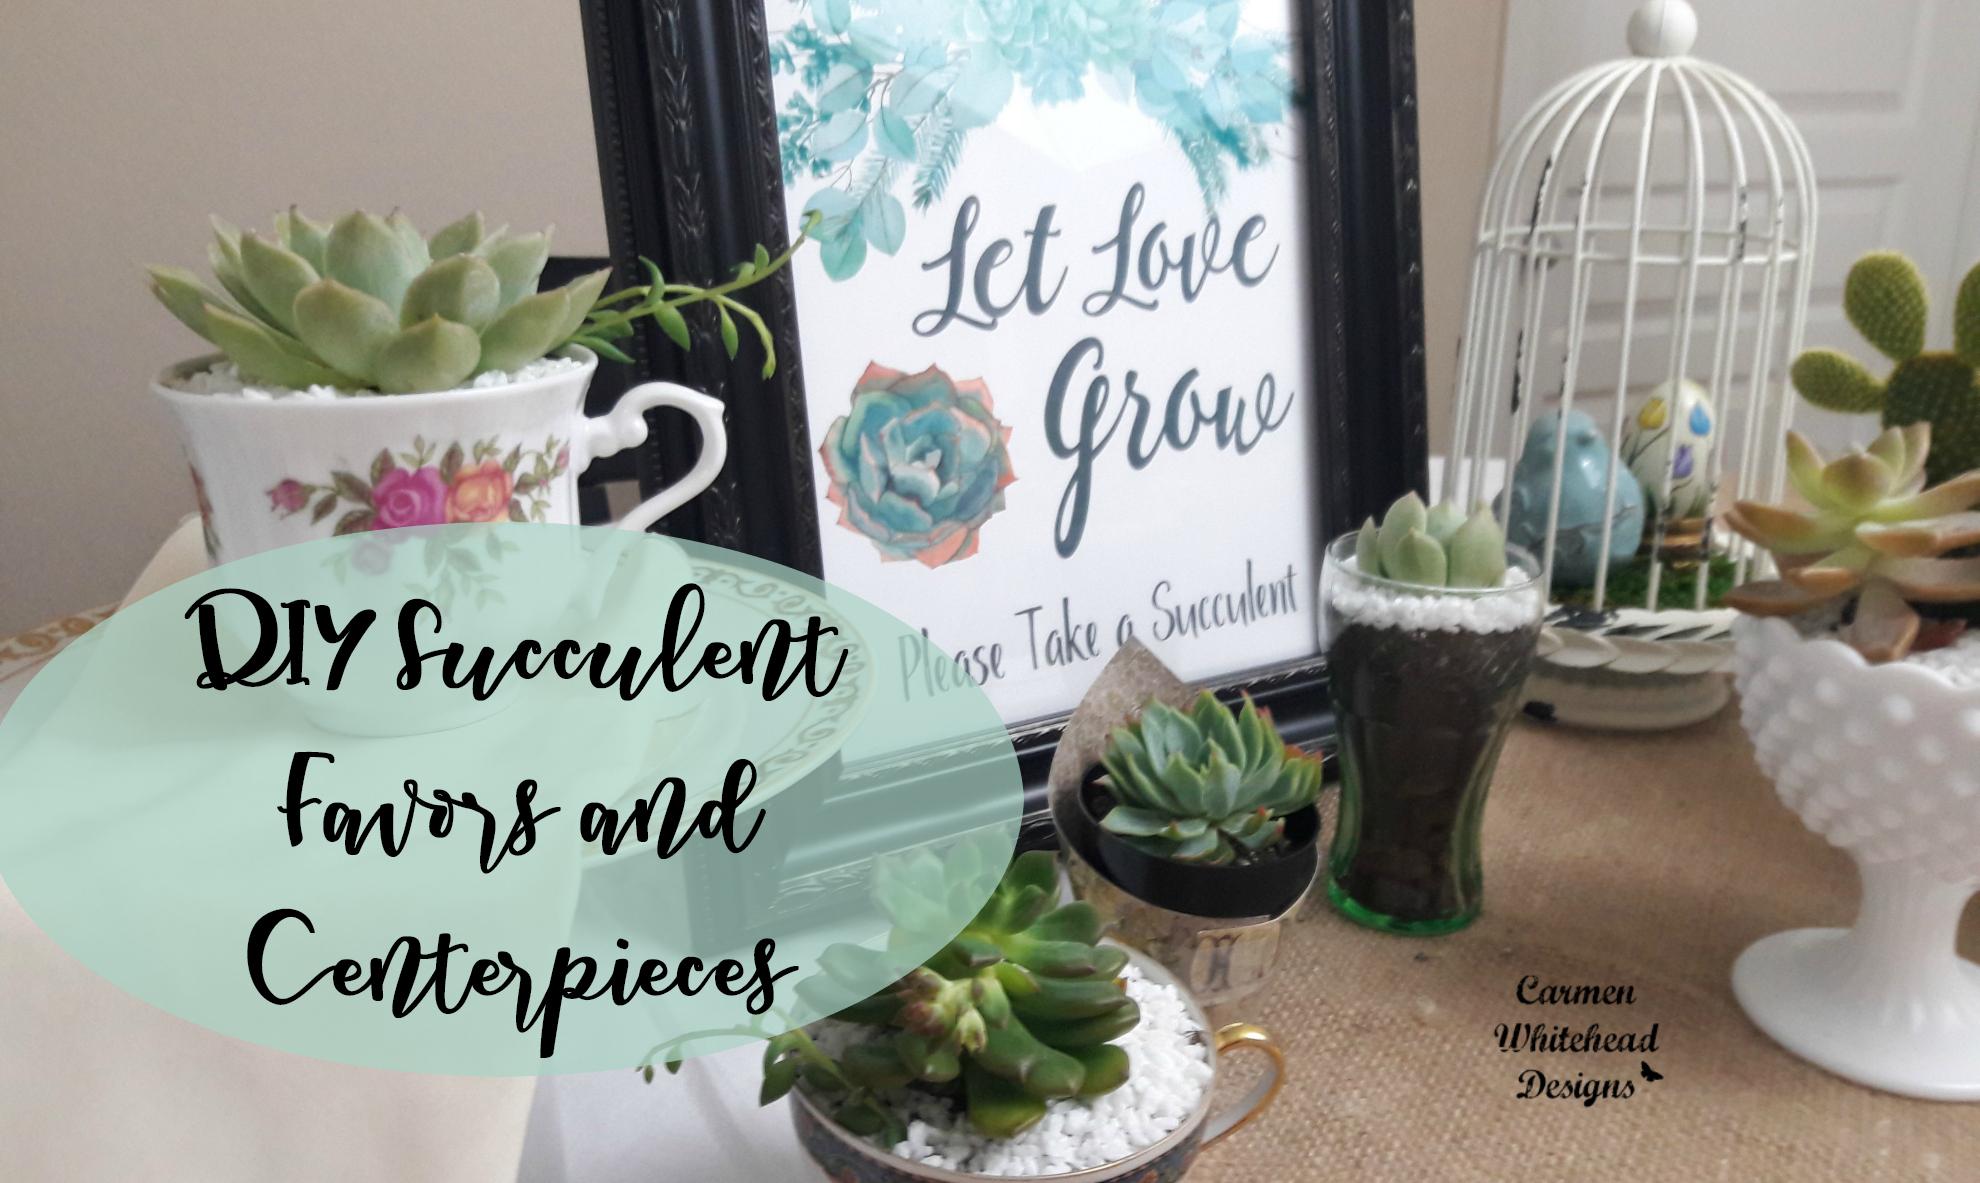 DIY Succulent Favors and Centerpieces